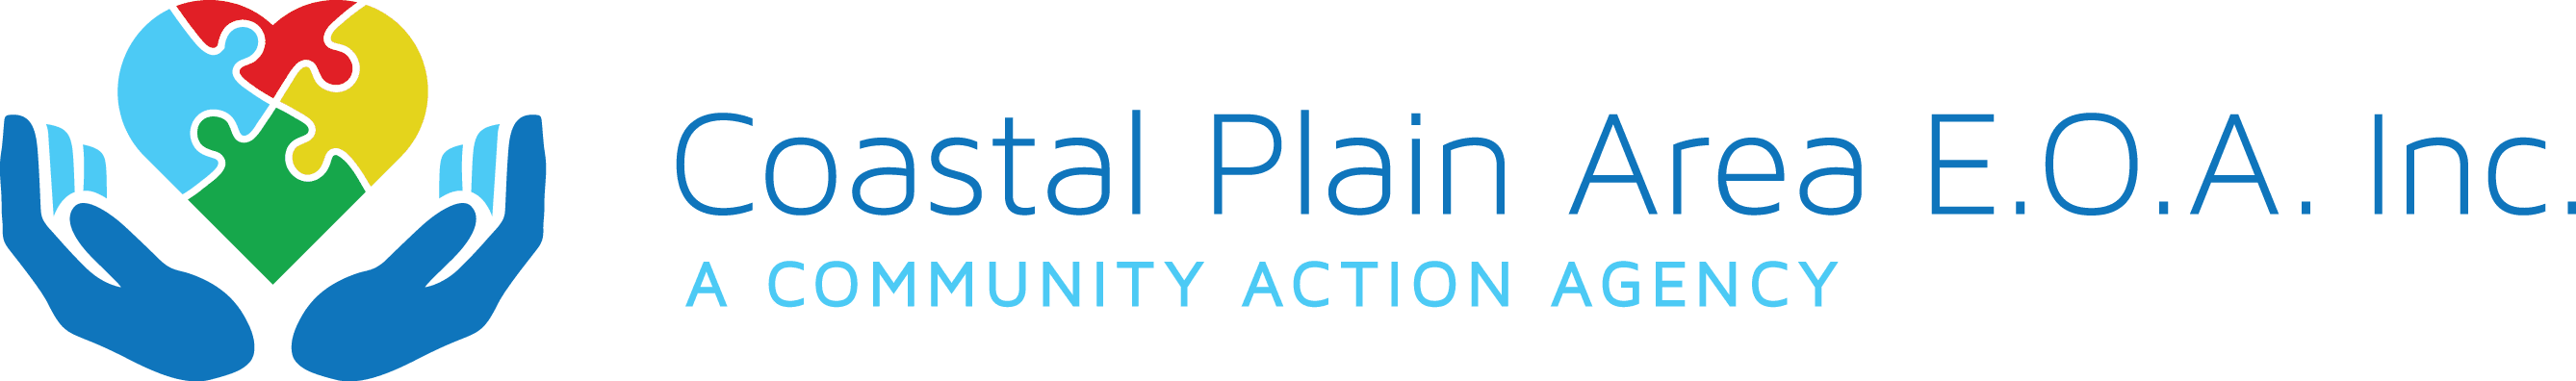 Coastal Plain Area Economic Opportunity Authority